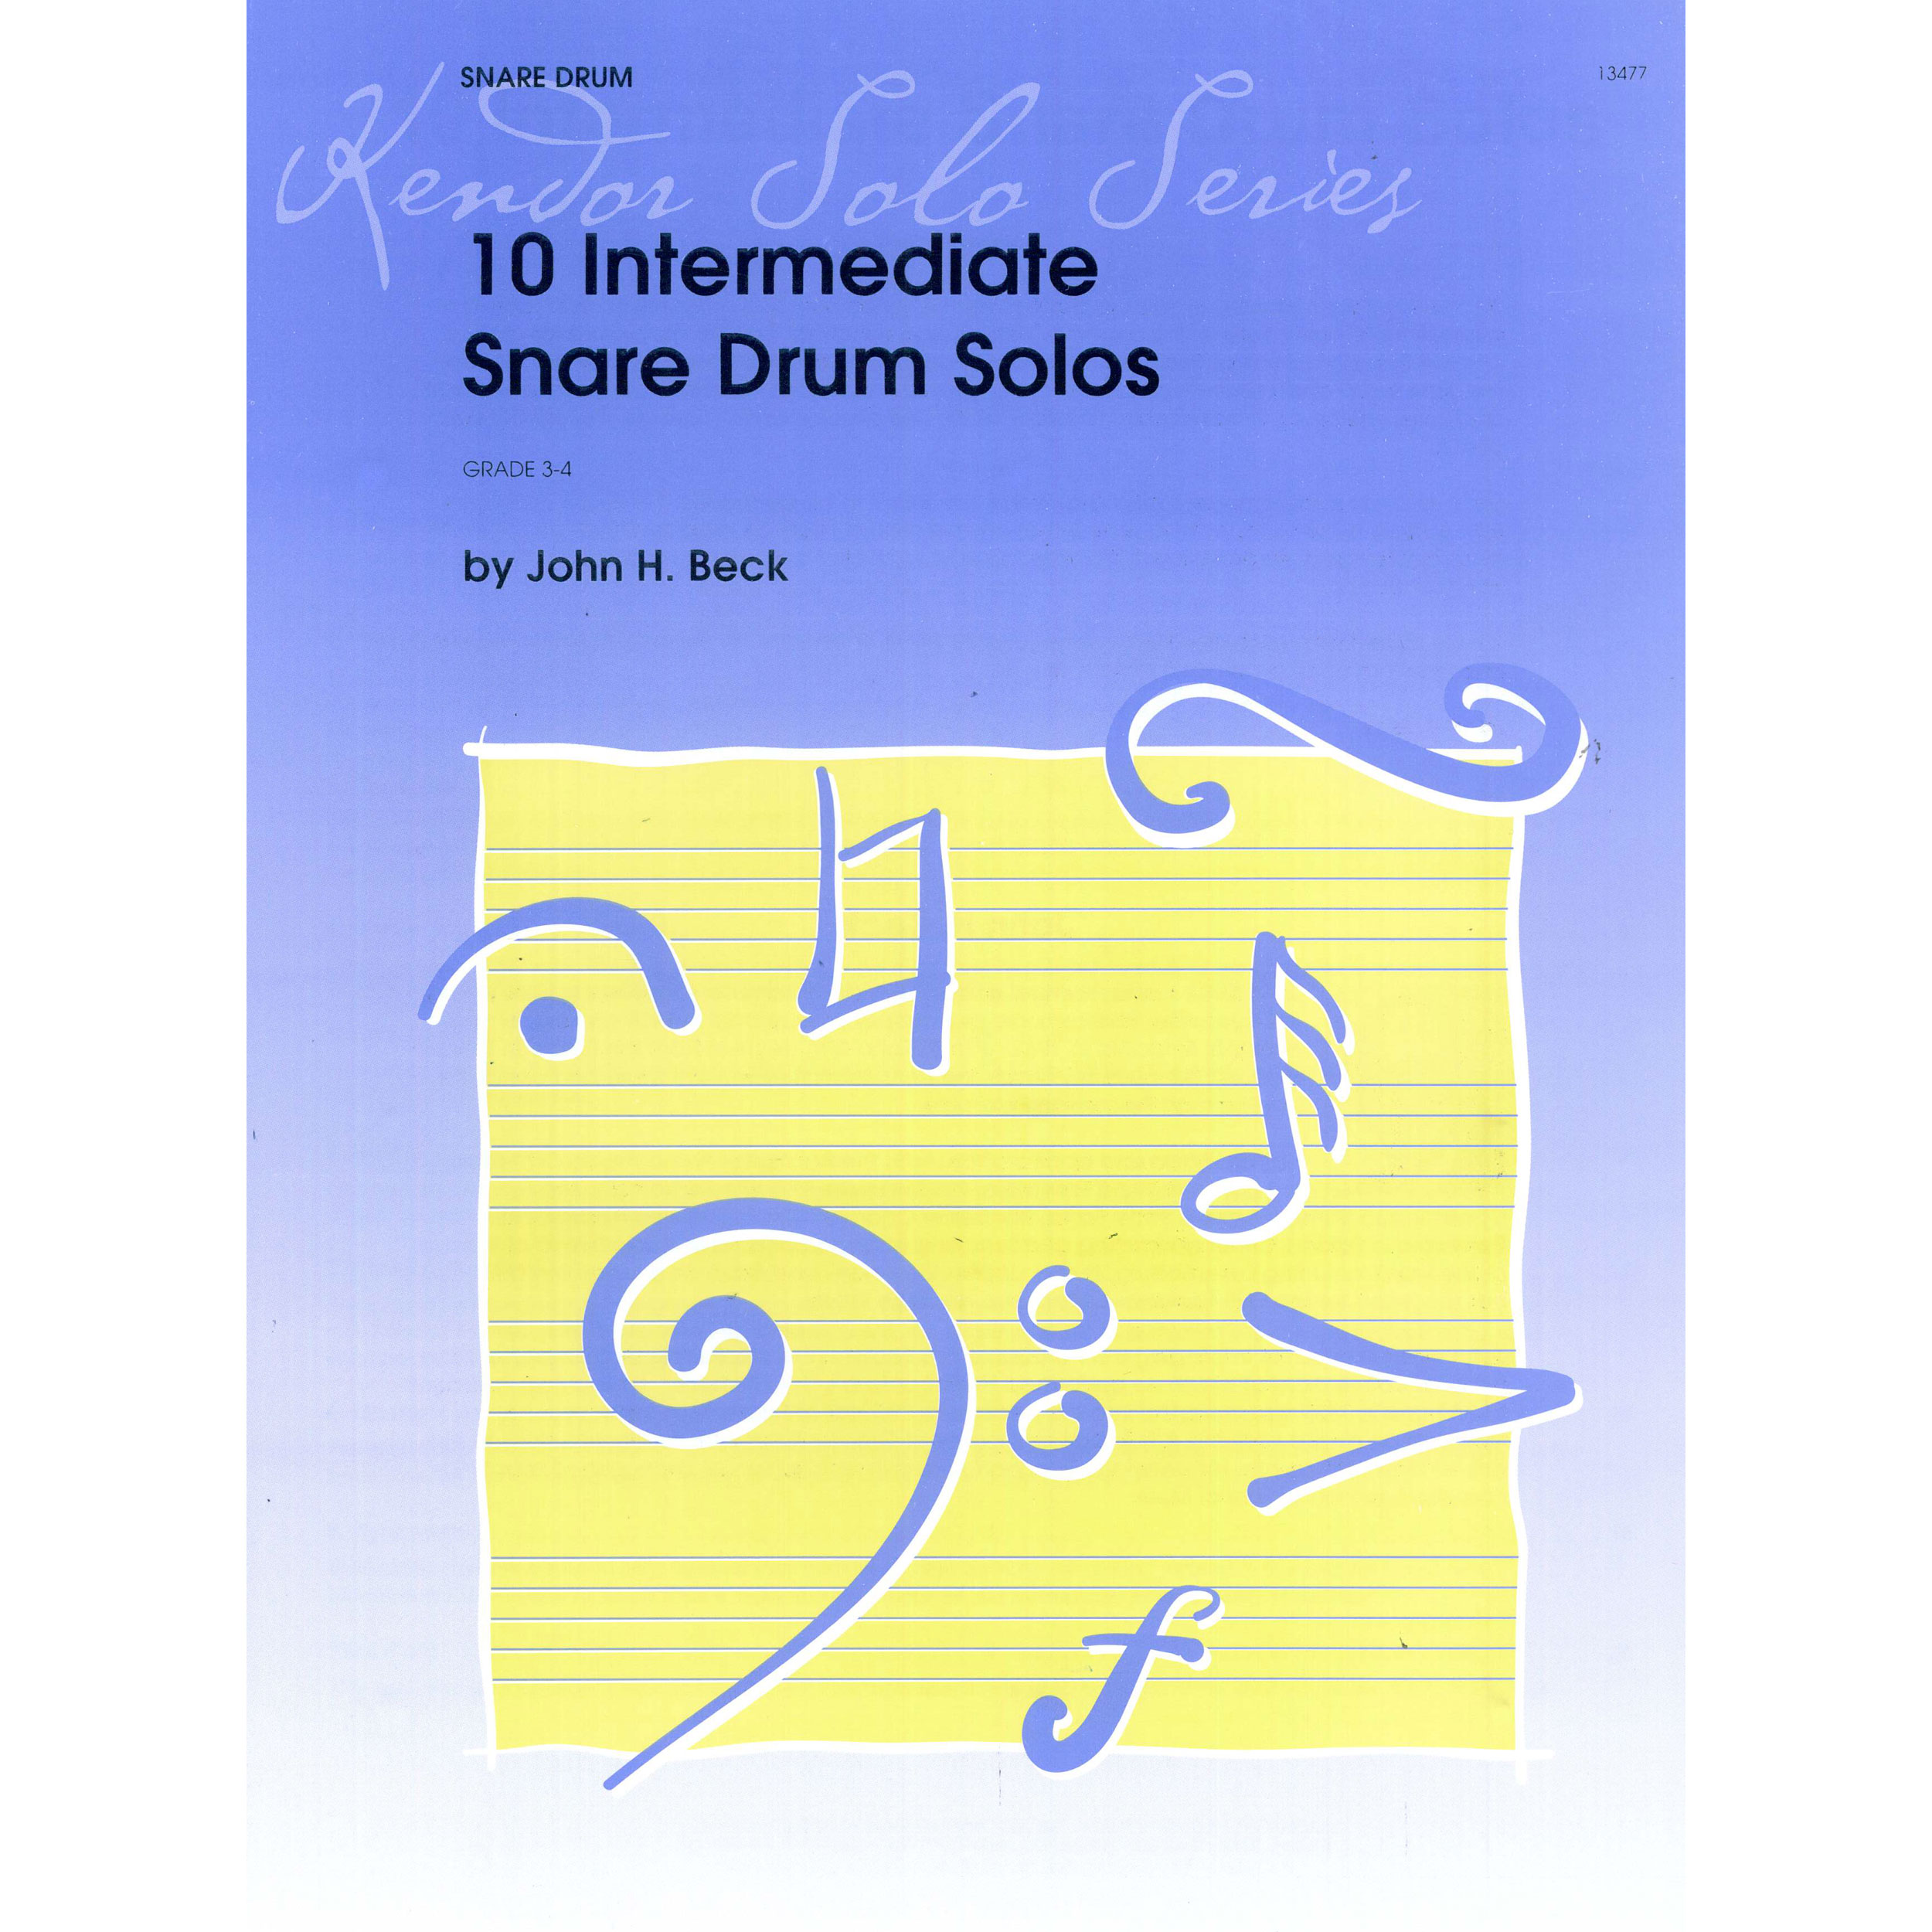 10 Intermediate Snare Drum Solos by John Beck